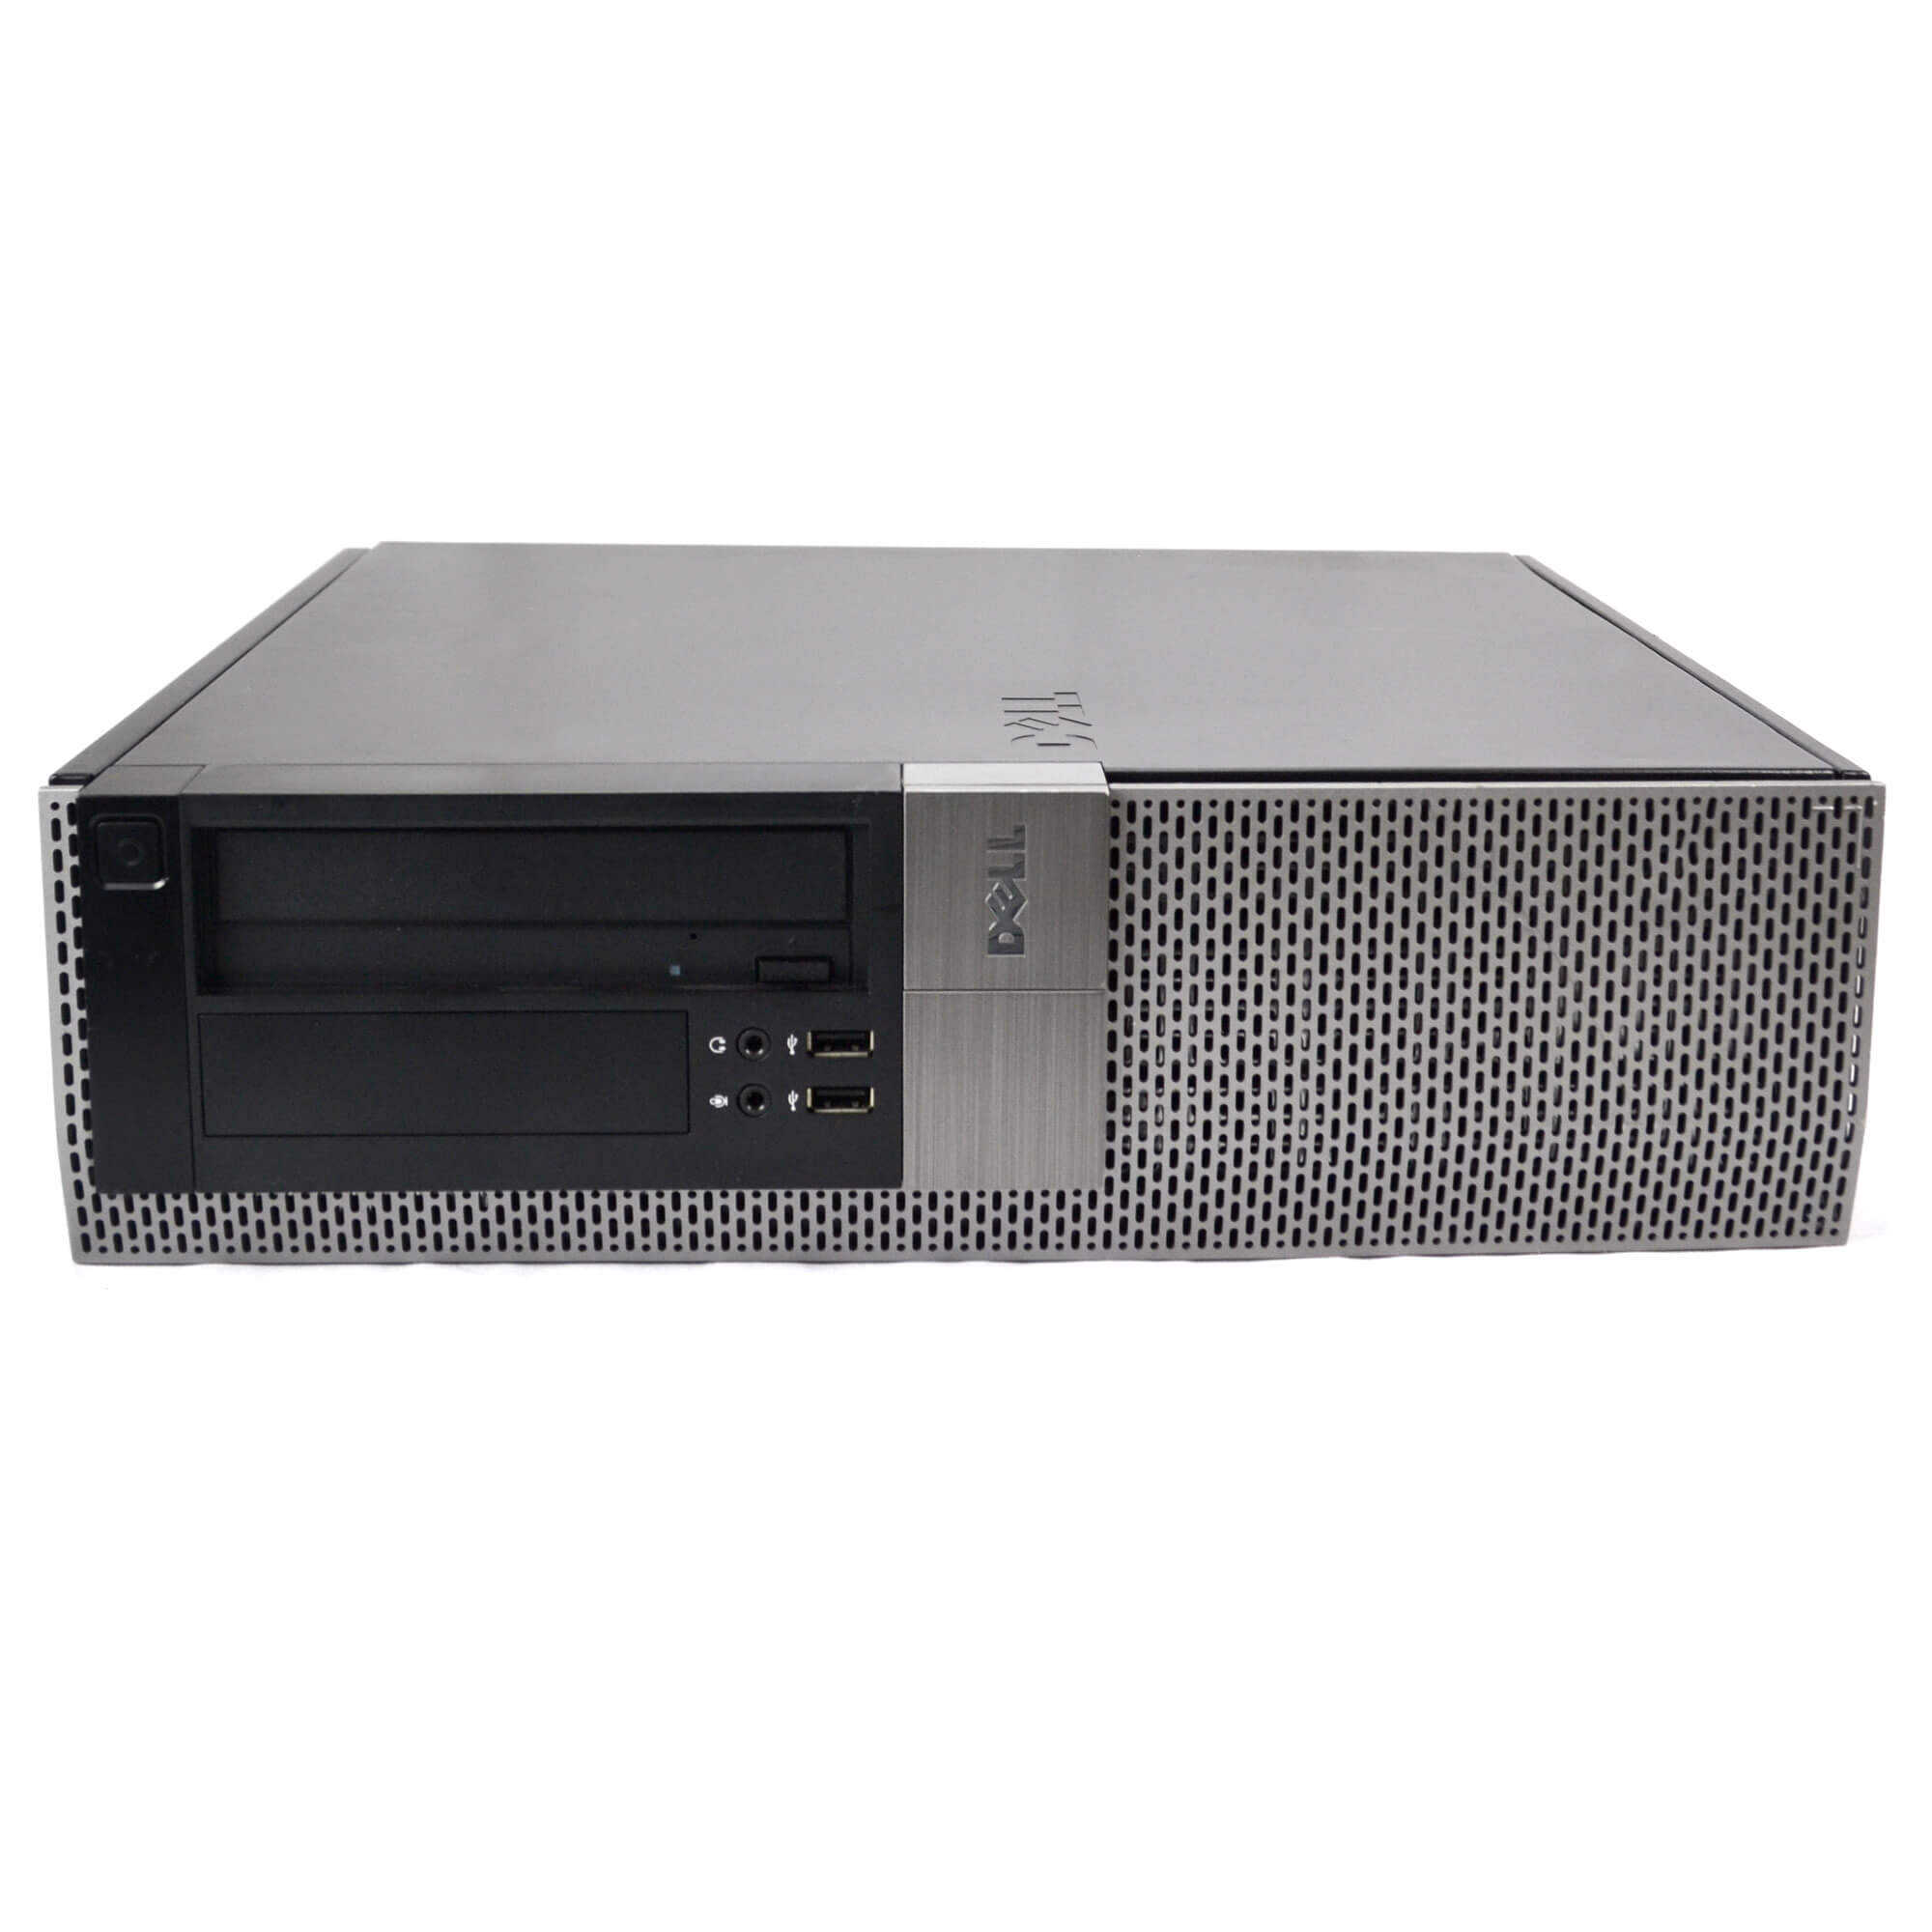 Refurbished Dell Gray Optiplex 980 Desktop Intel i5 Dual Core 3.2GHz 8GB RAM 250GB HDD Intel HD Graphics DVD-RW Windows 10 Professional 19'' Display Keyboard Mouse